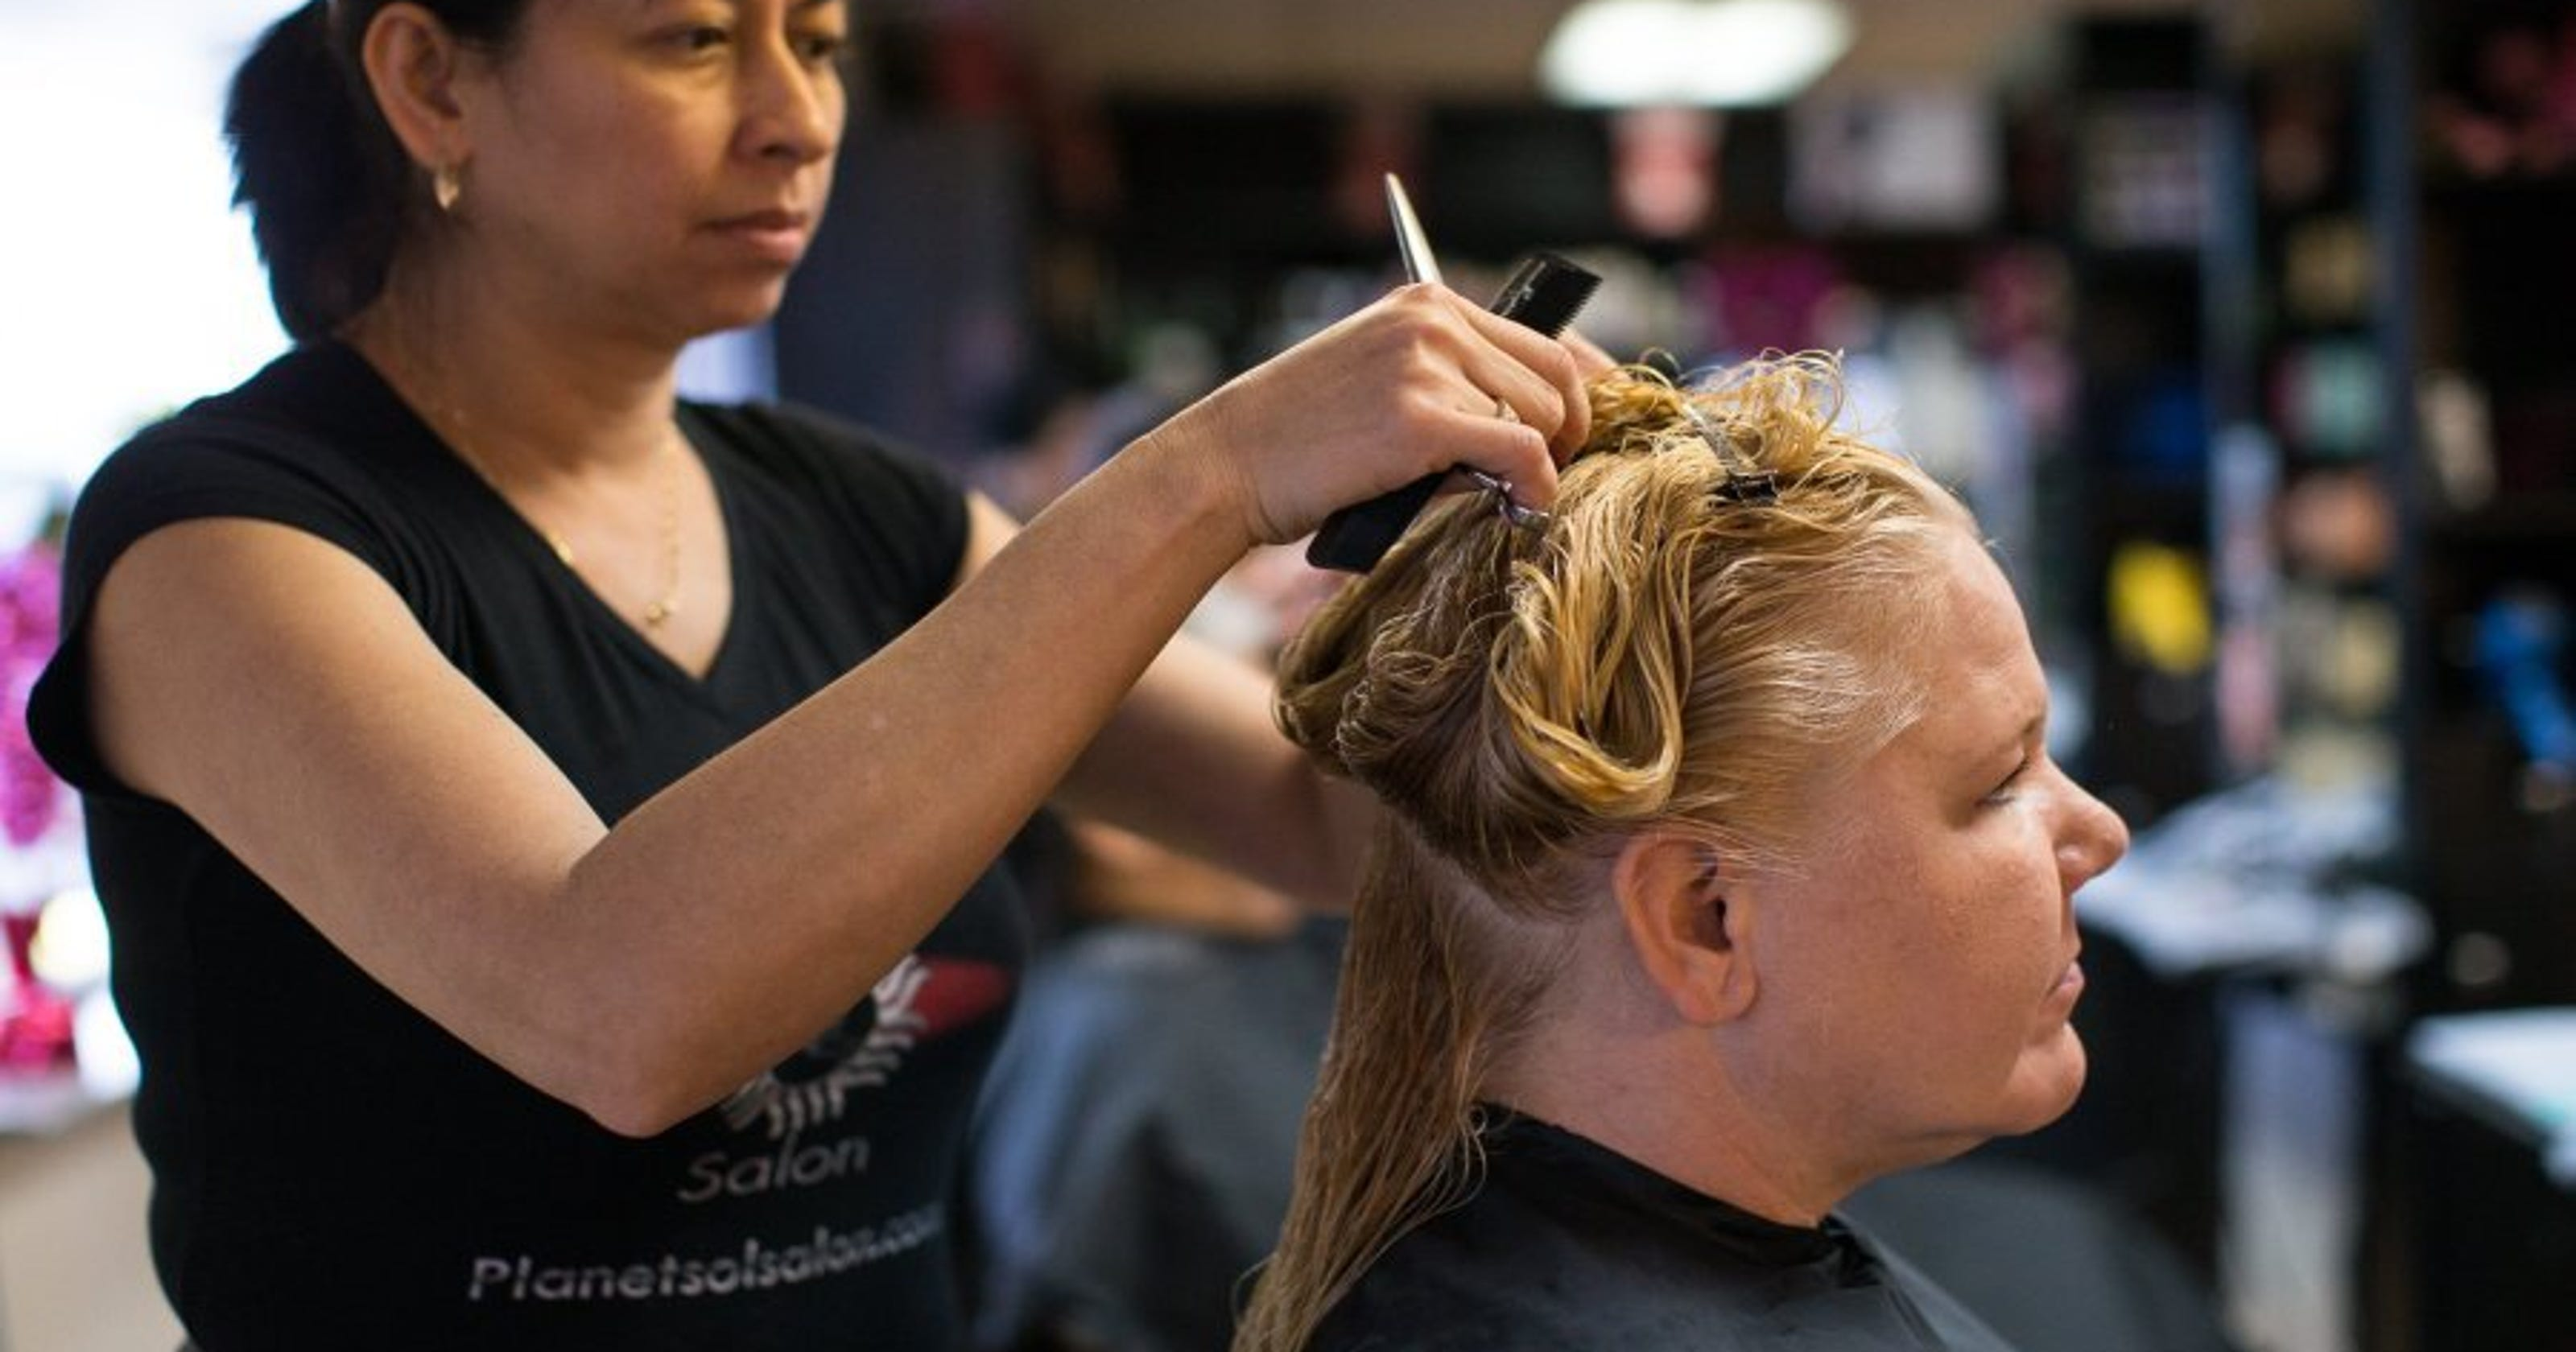 Planet Sol Salon Gives Free Hair Cuts To Homeless